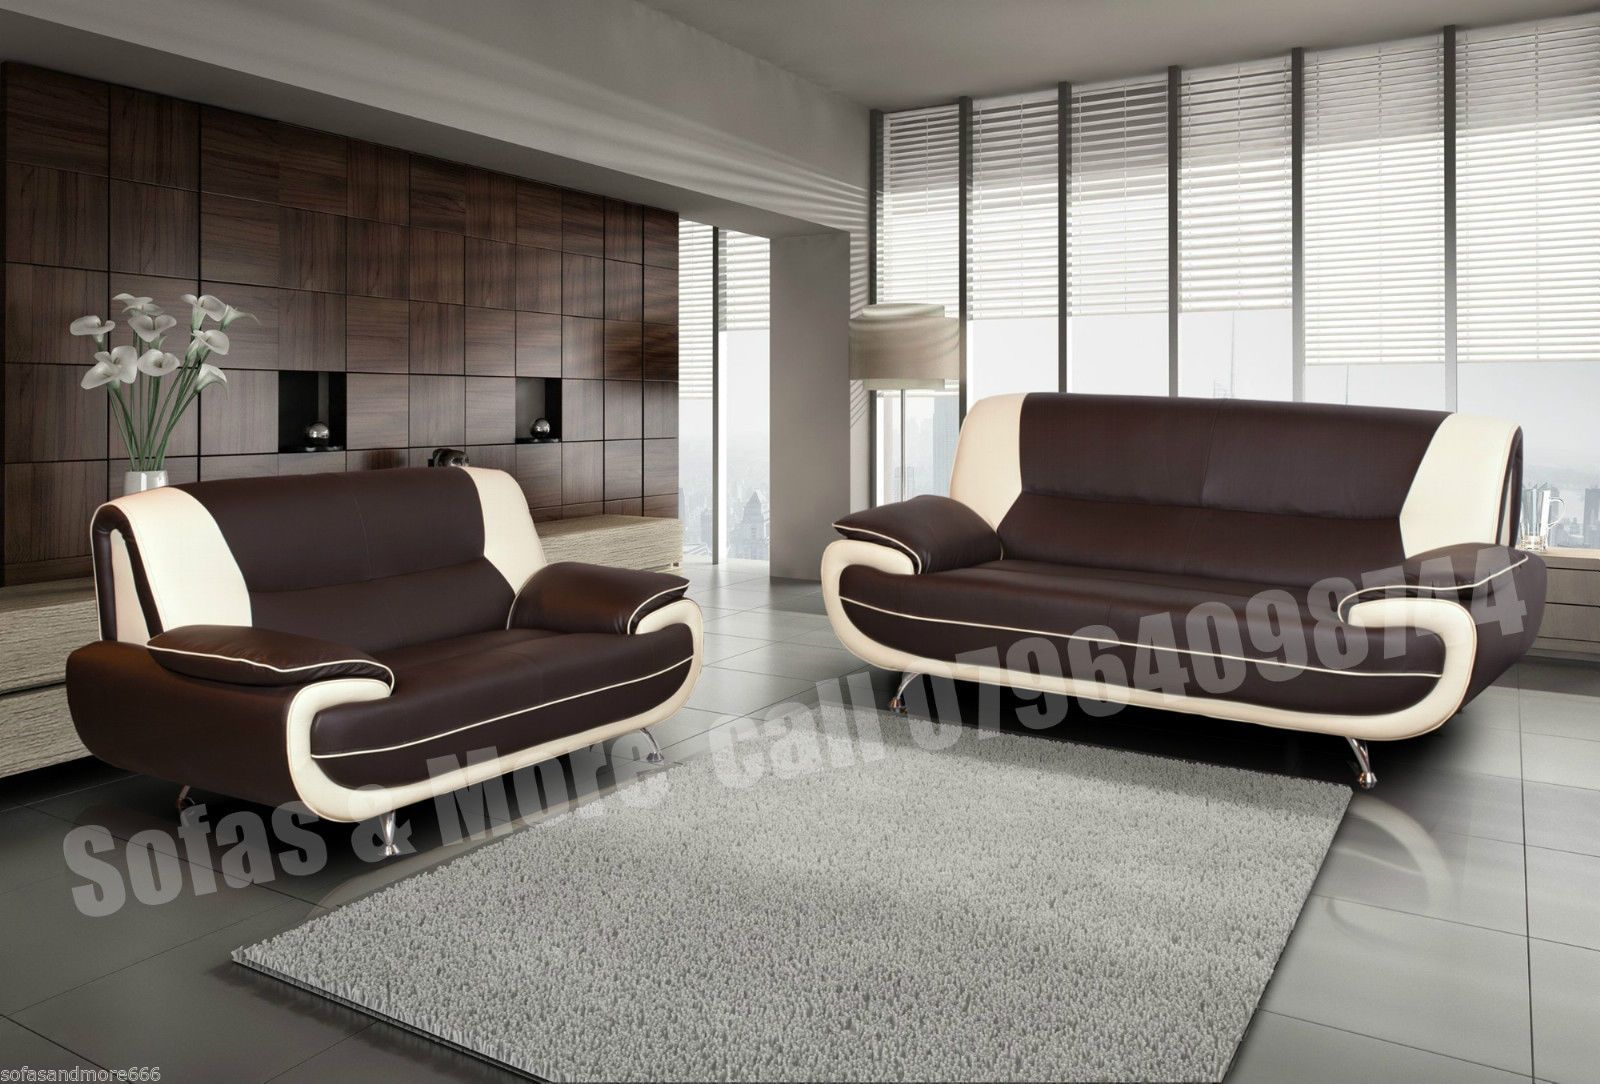 6 Seater Corner Sofa Chesterfield Pin By Sofas Andmore On Home Furniture Sofas 2 Seater